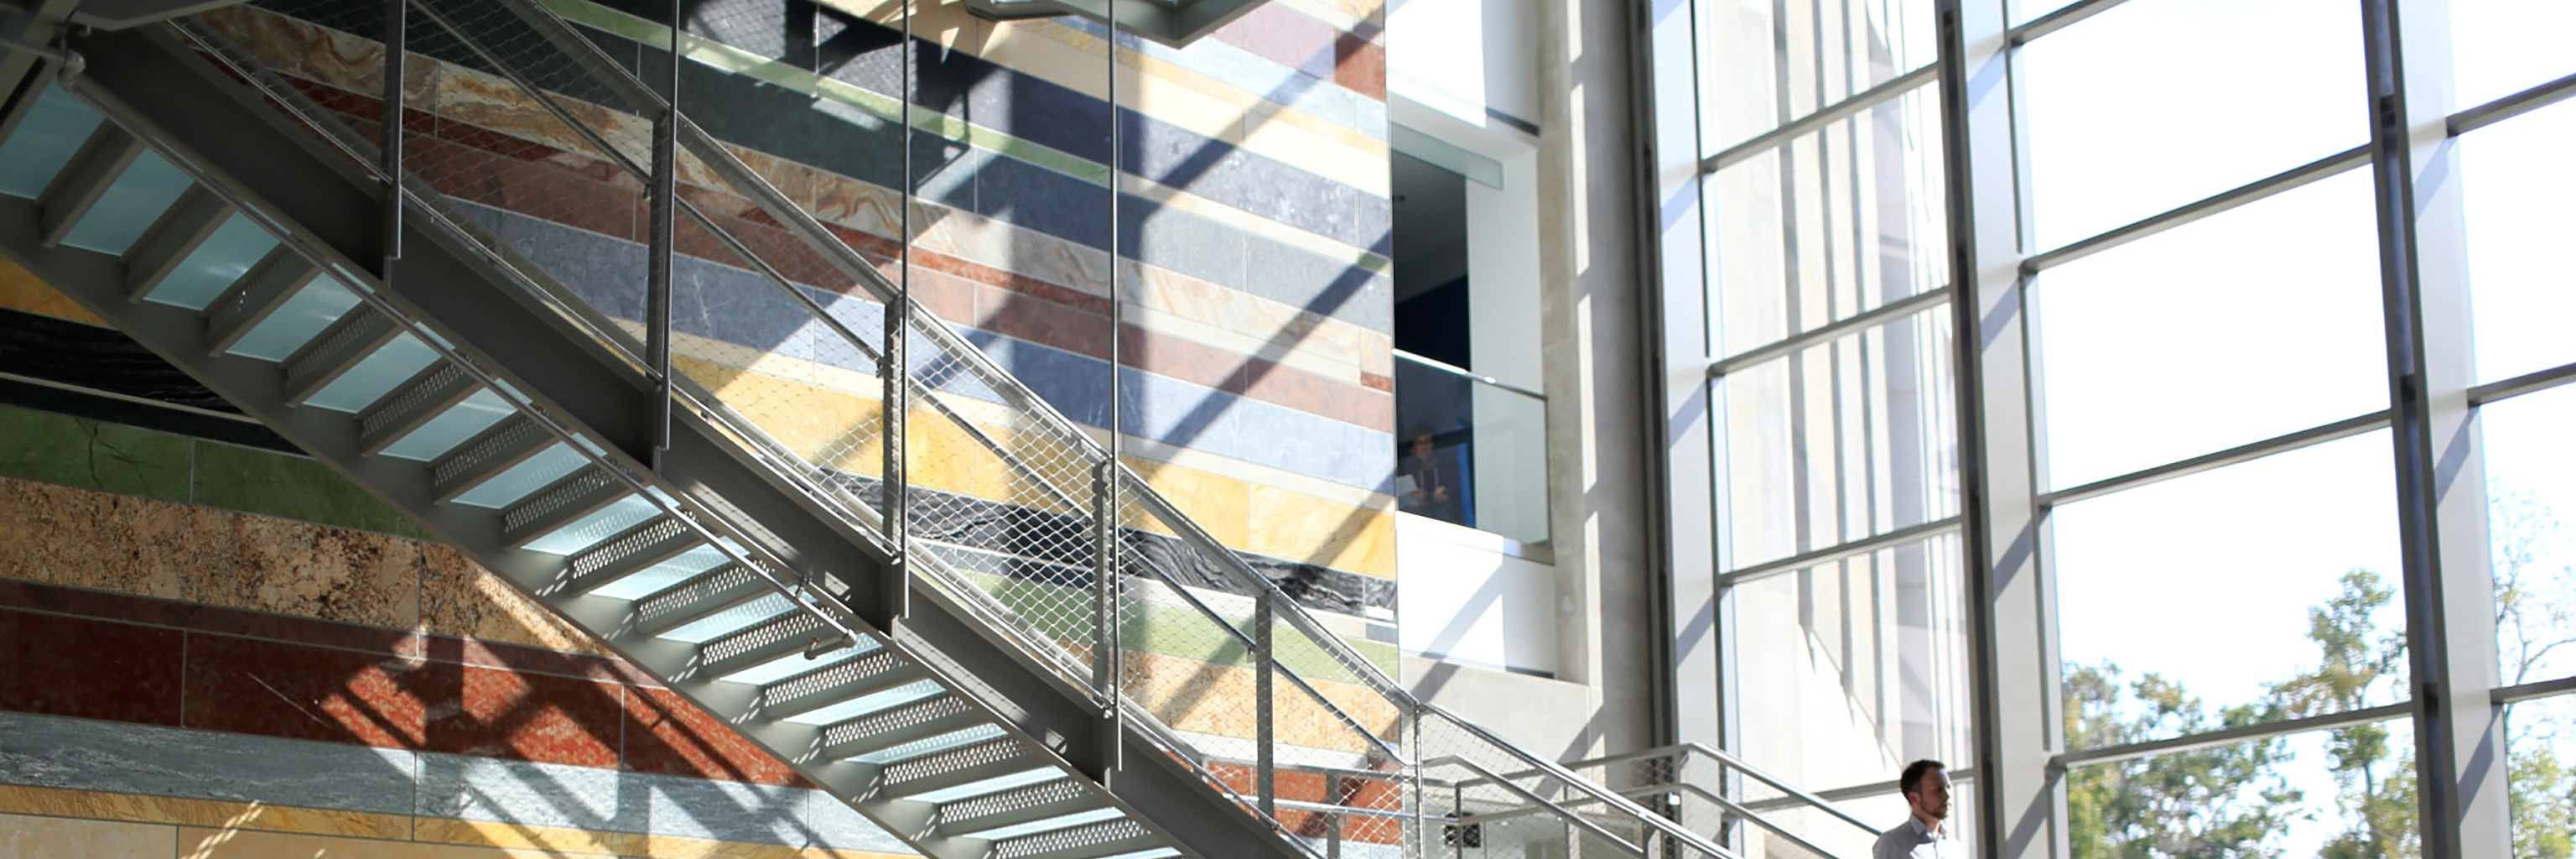 Staircase in the Global and International Studies Building